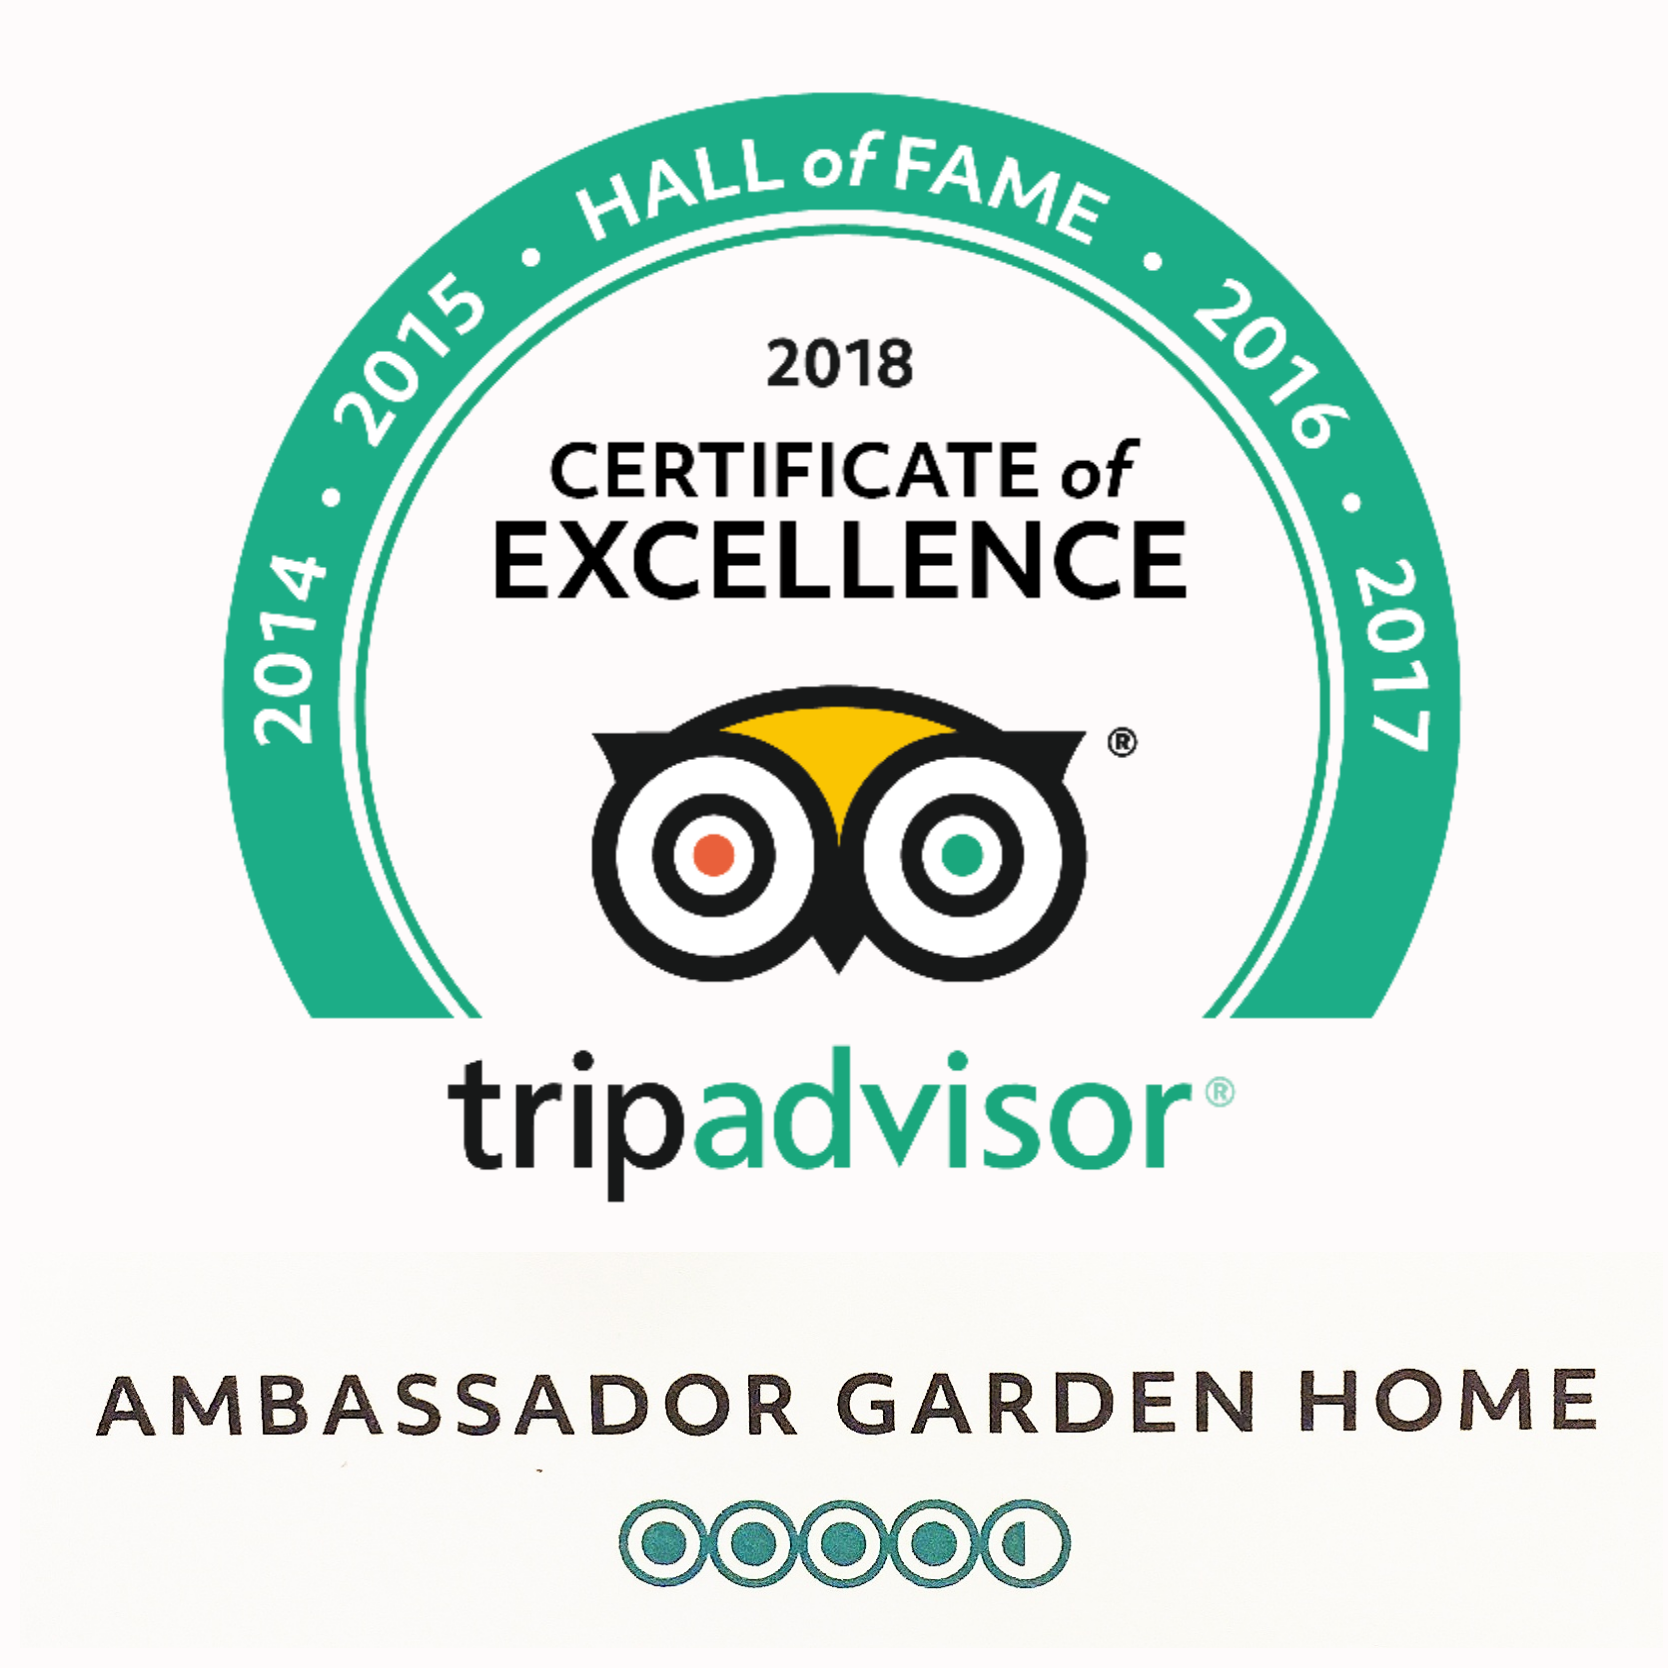 Ambassador Garden Home has been Awarded by Tripadvisor in Nepal for 2010 to 2018 the symbol of excellence in hospitality for 8 consecutive years.